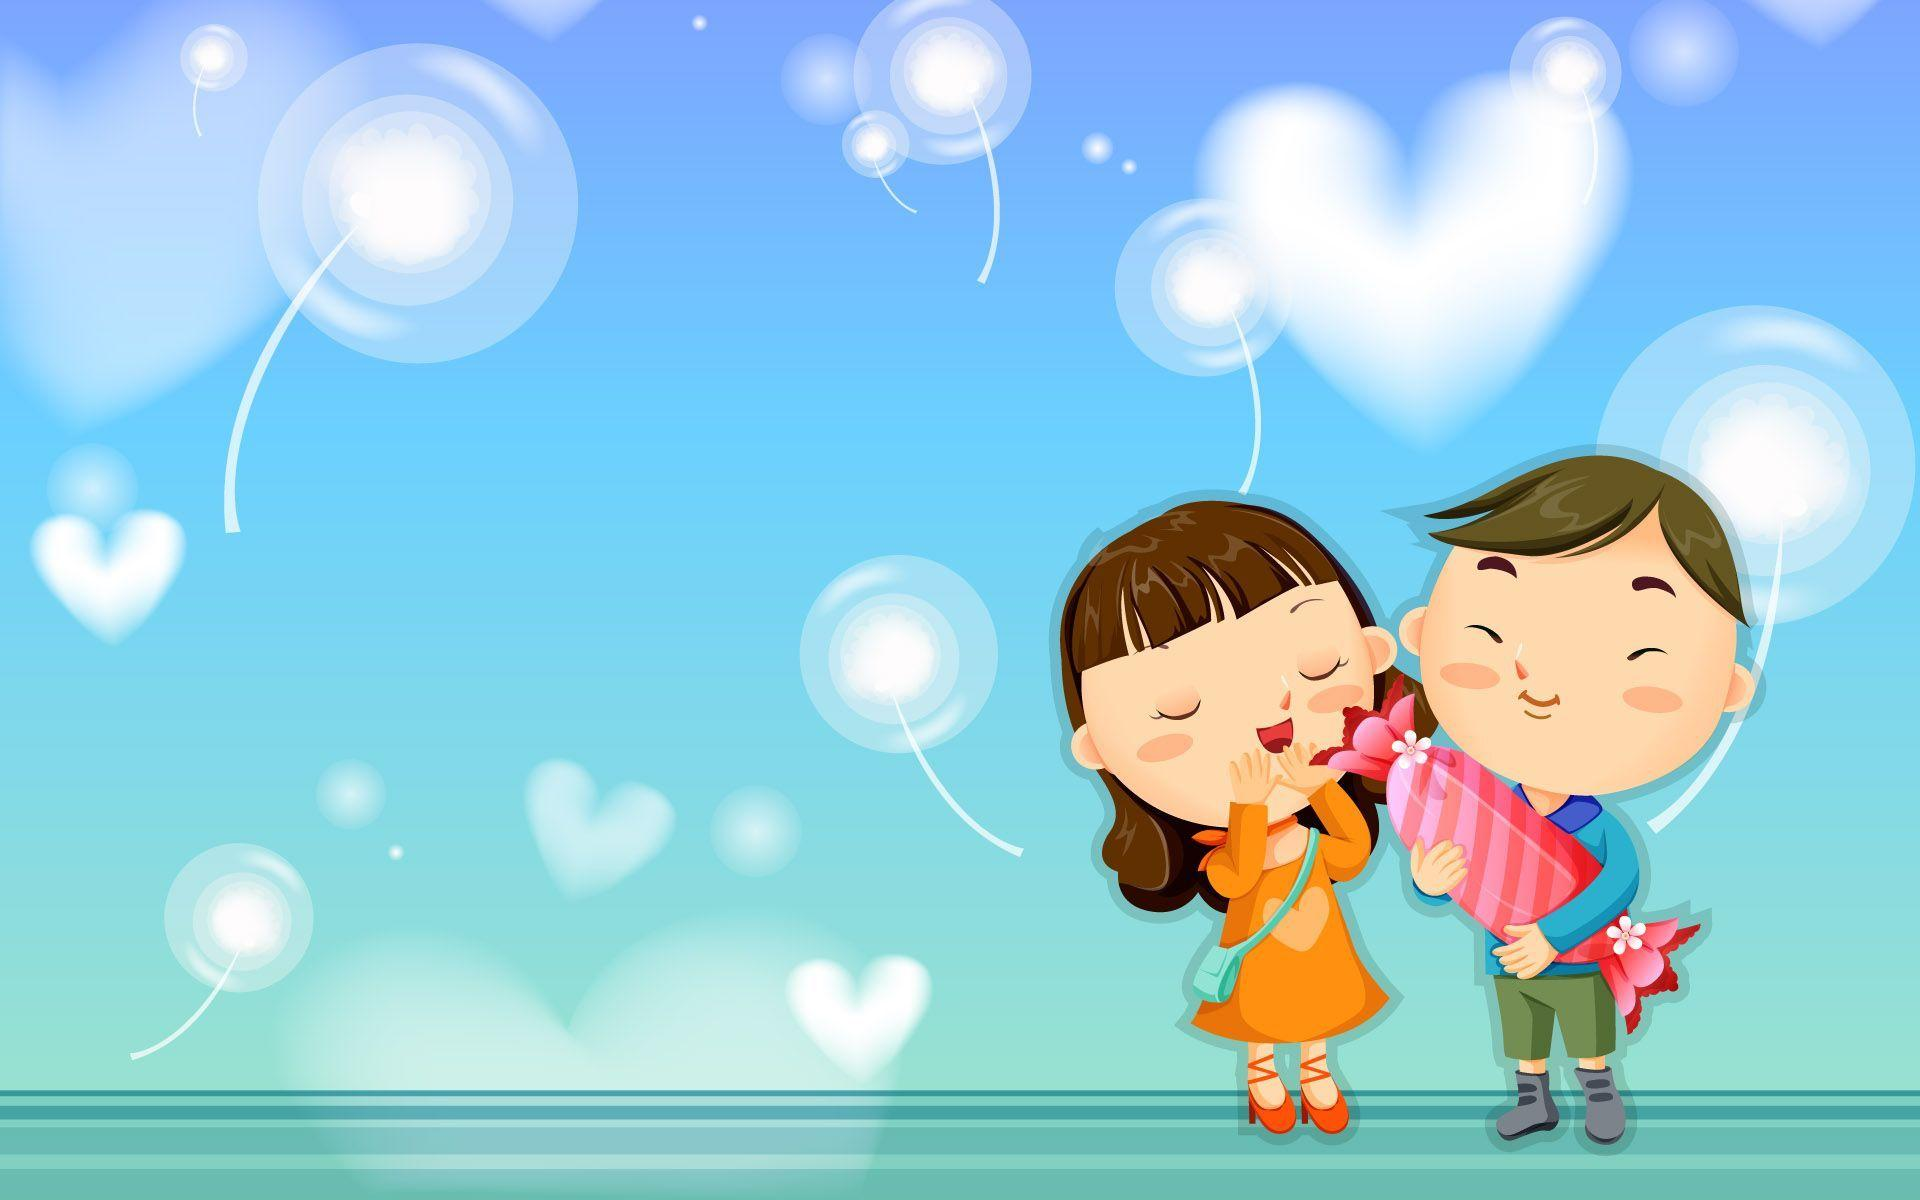 Love Boy cartoon Wallpaper : Love cartoon Wallpapers - Wallpaper cave